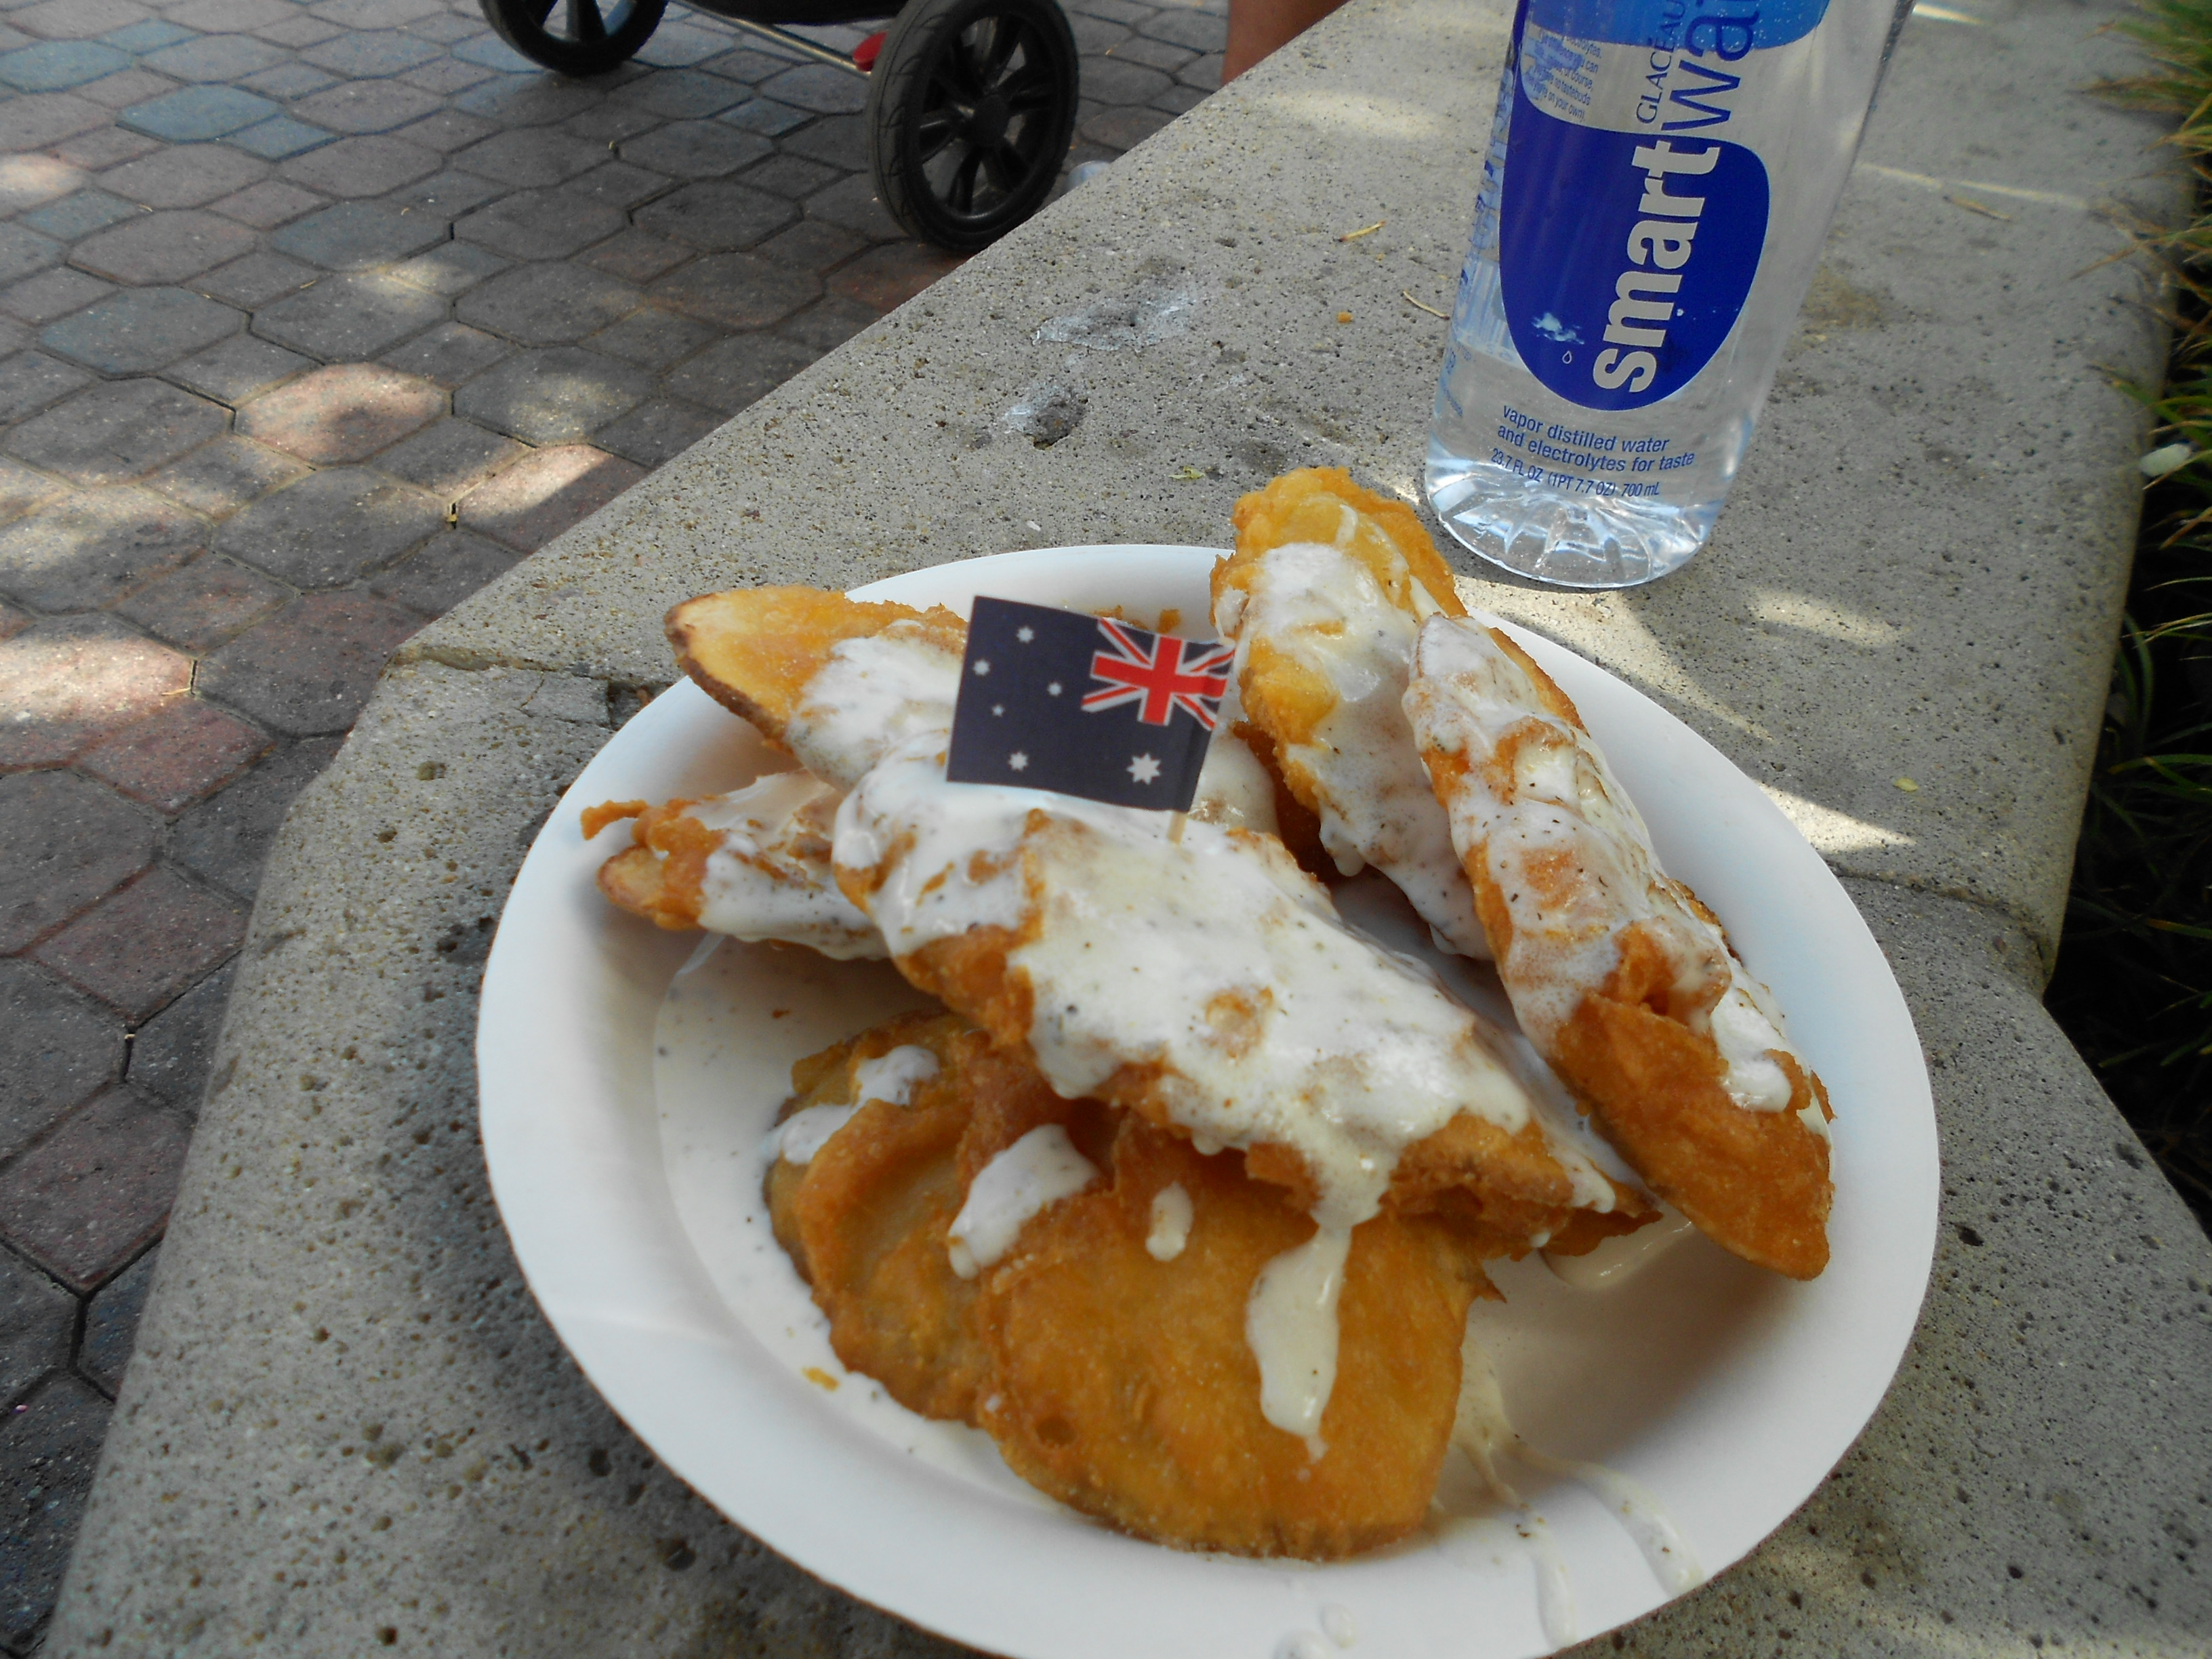 Yummy! Australian Battered Potatoes with ranch dressing at Del Mar Fair.